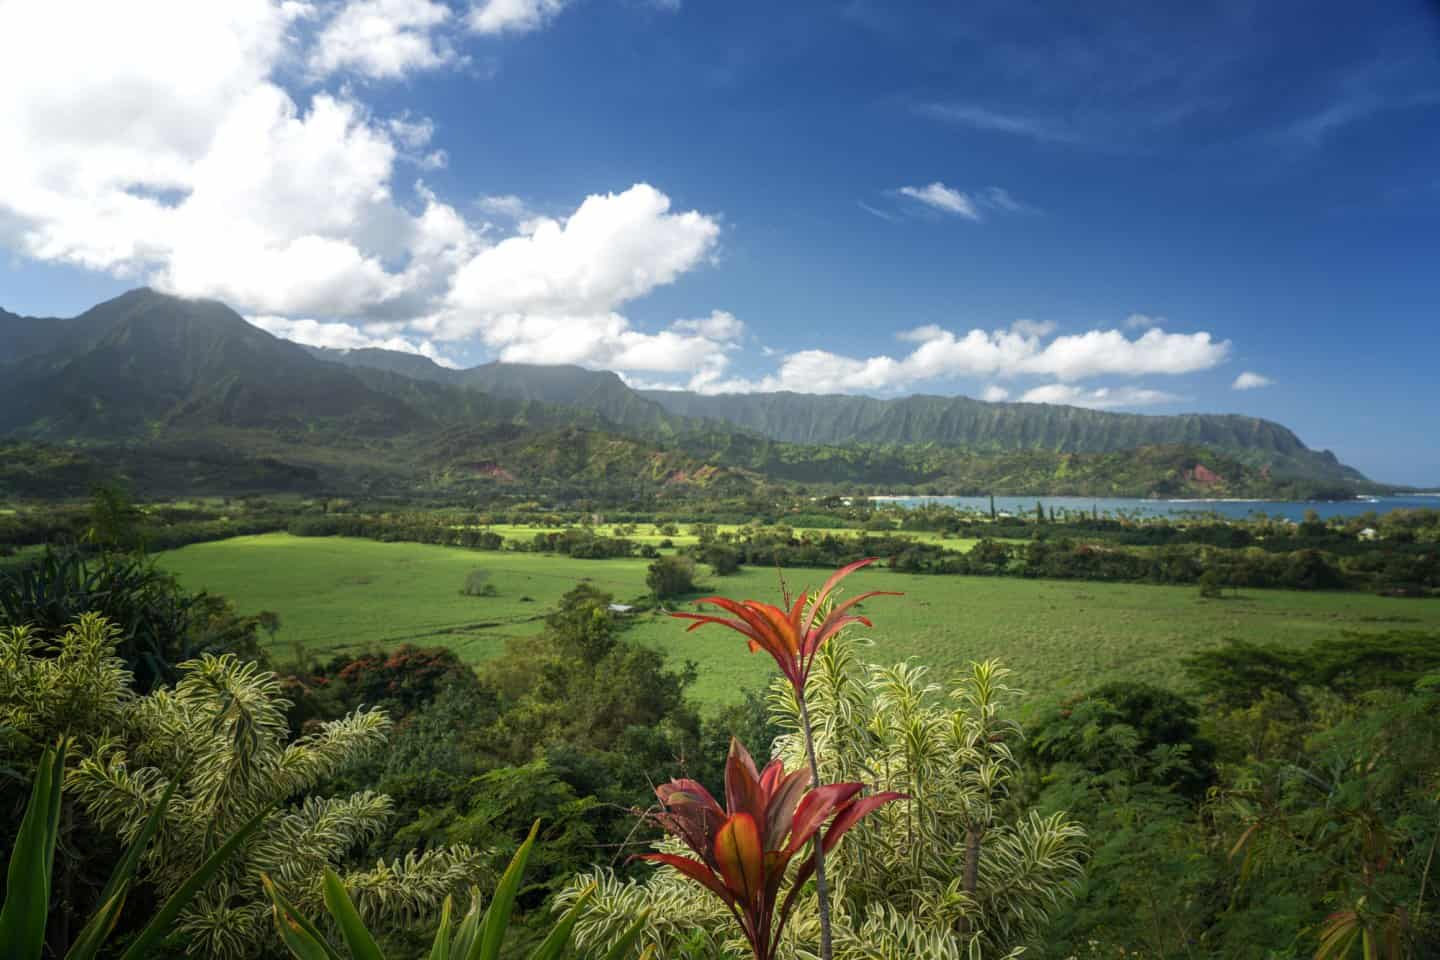 Hanalei Valley Lookout is one of the best views in Kauai, and makes for amazing Kauai landscape photography.